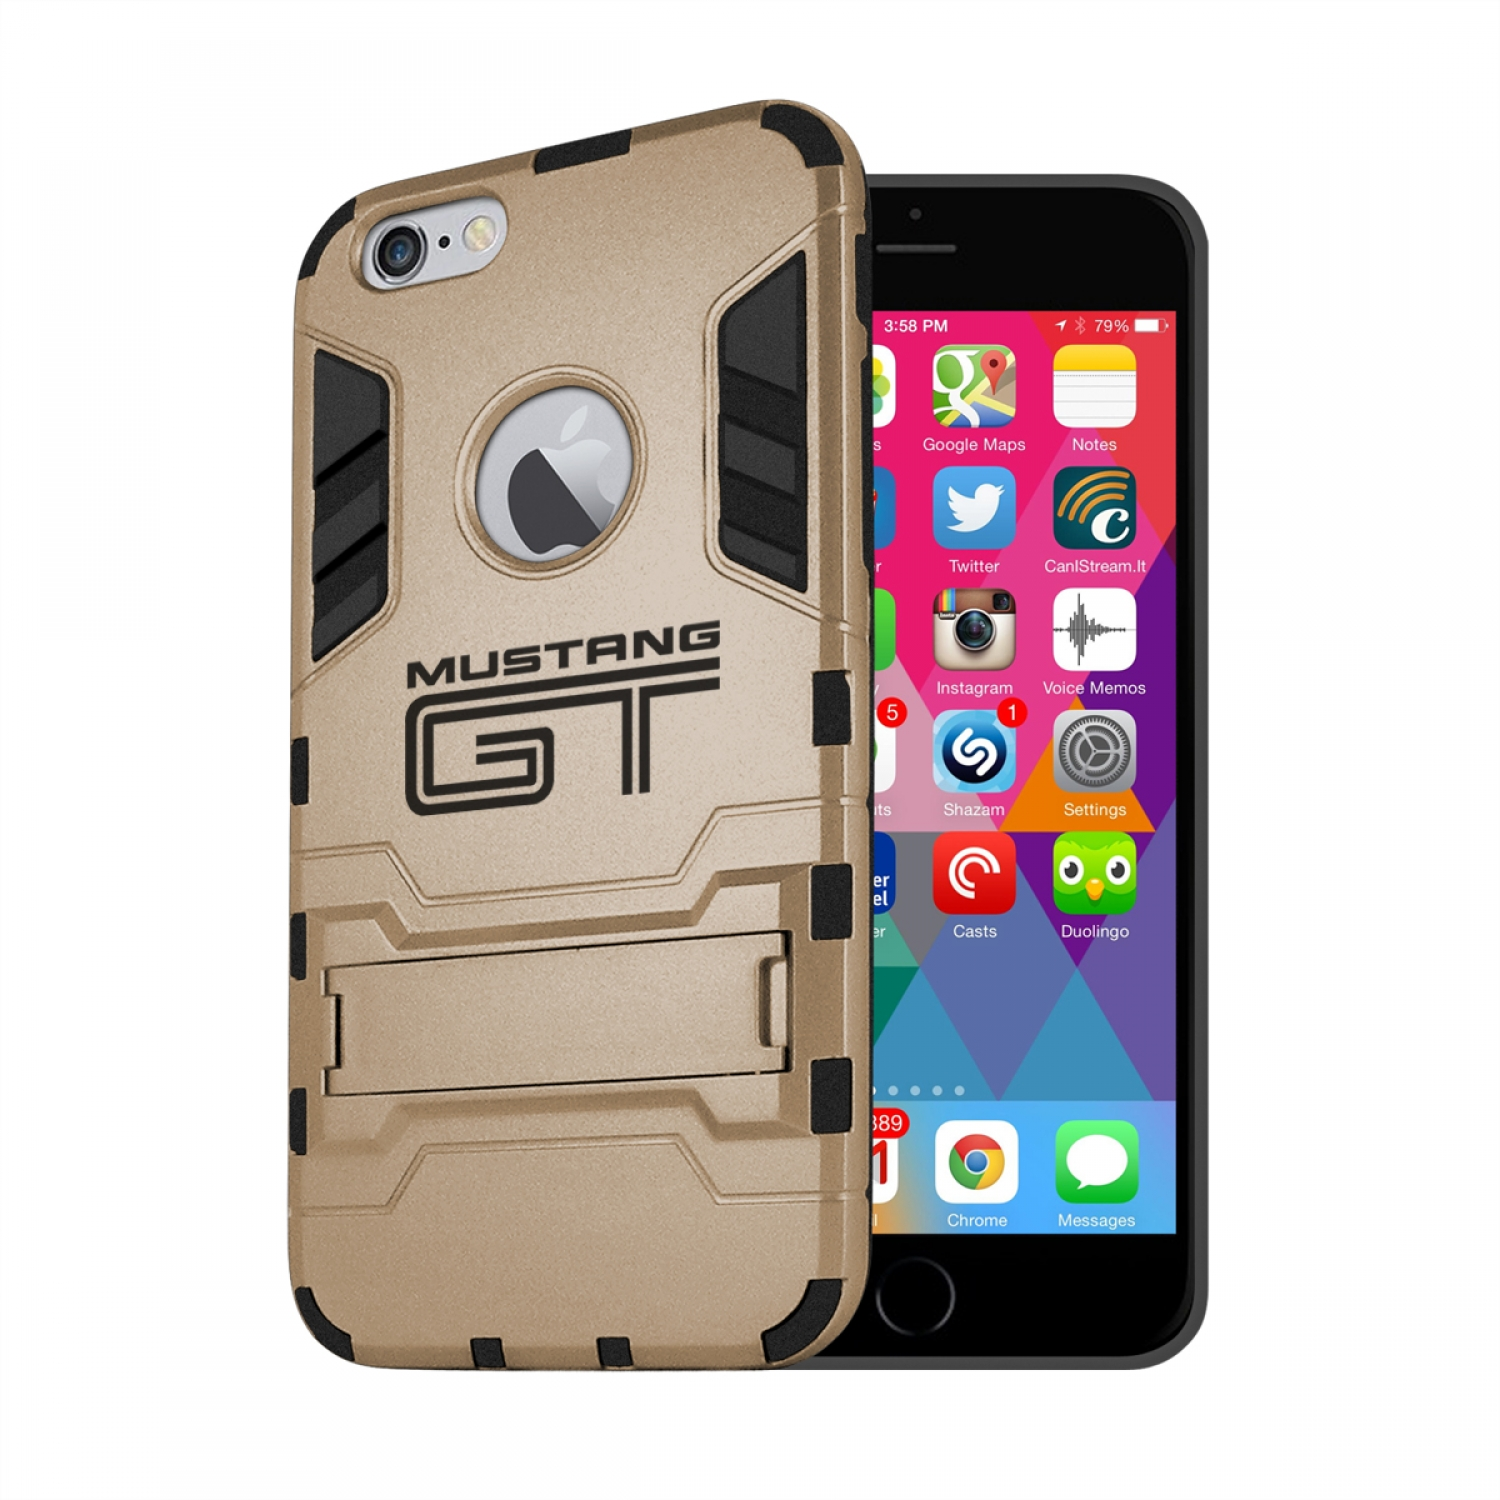 Ford Mustang GT iPhone 6 6s Shockproof TPU ABS Hybrid Golden Phone Case